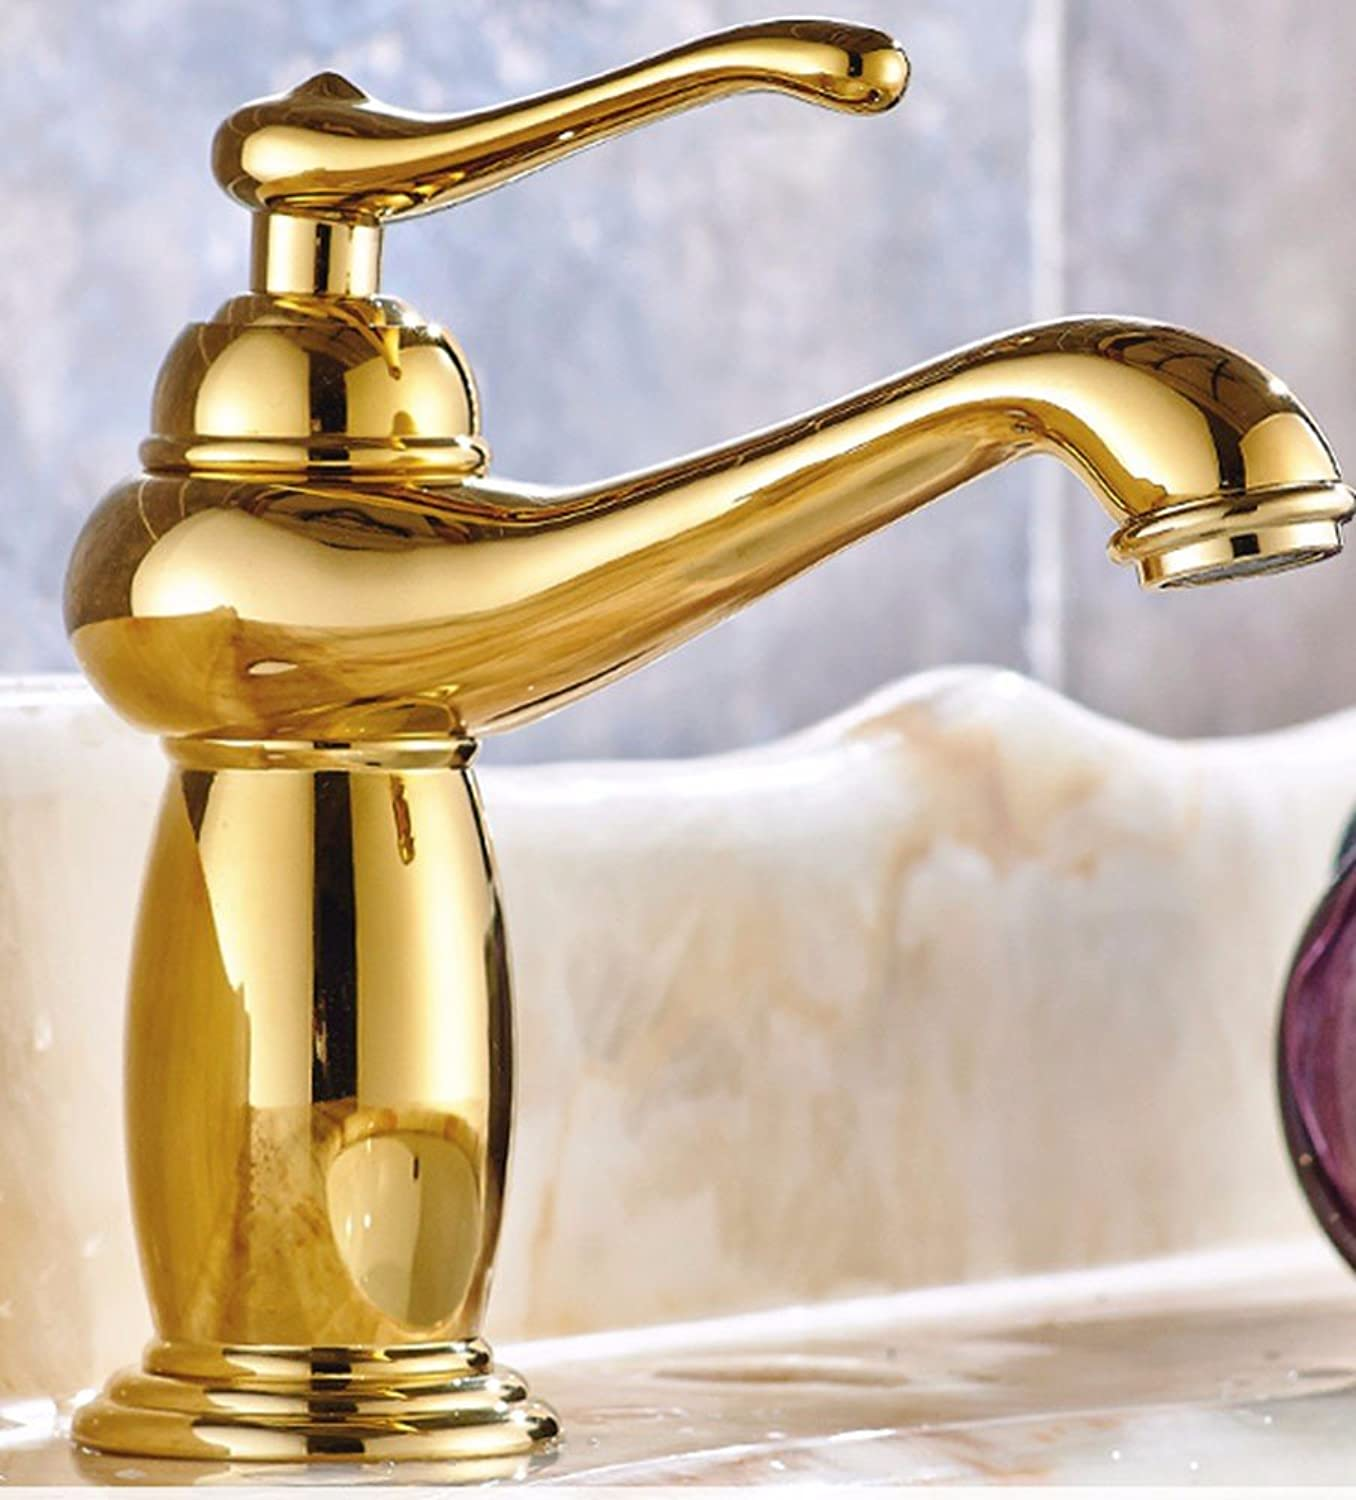 SCLOTHS Bathroom Basin Sink Mixer Tap Faucet Modern Copper Retro gold sink porcelain hot and cold Swivel Chrome Plated